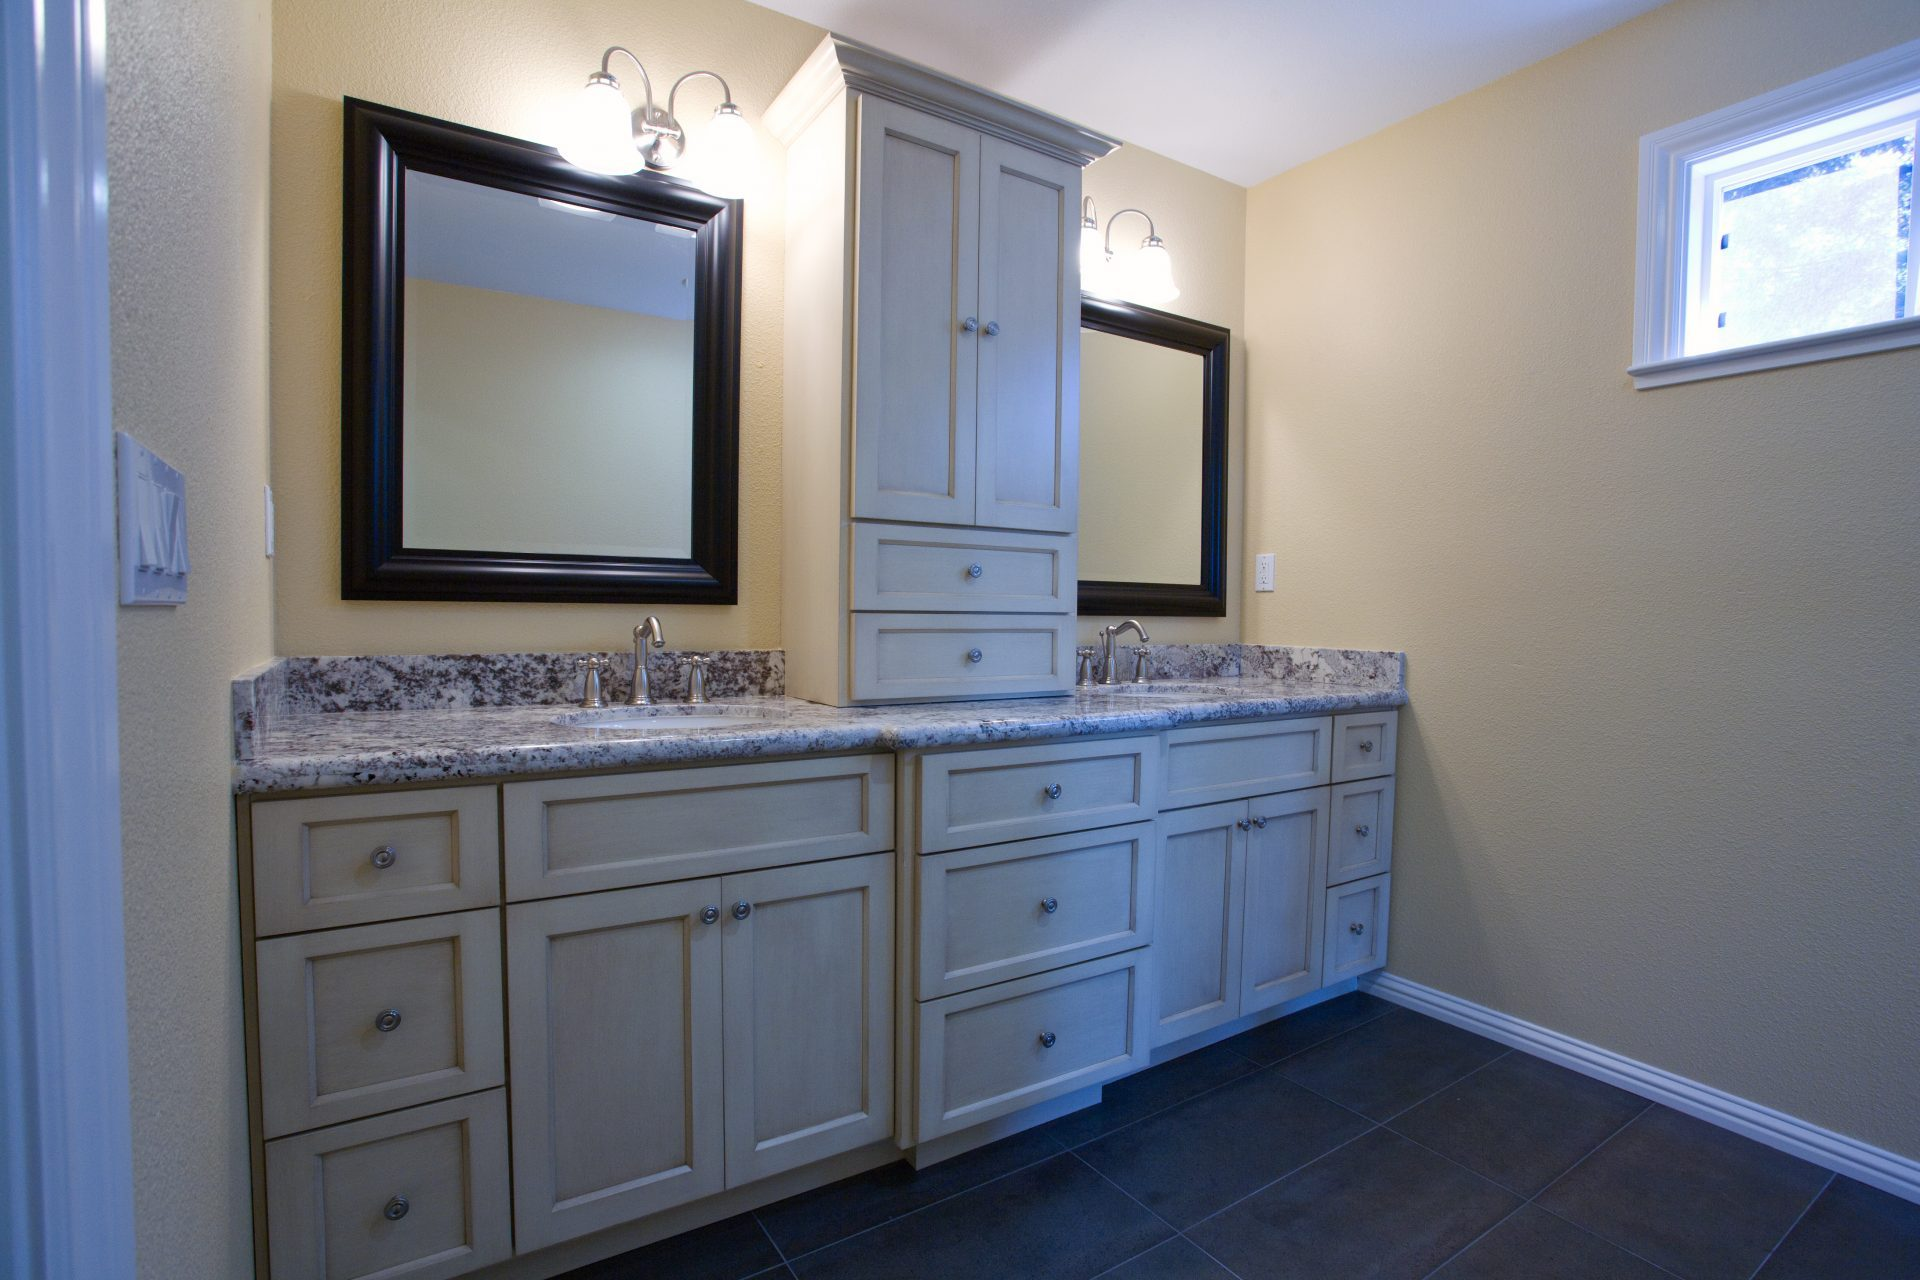 Bathroom Lighting San Jose Ca bathroom remodel san jose ca ~ dact